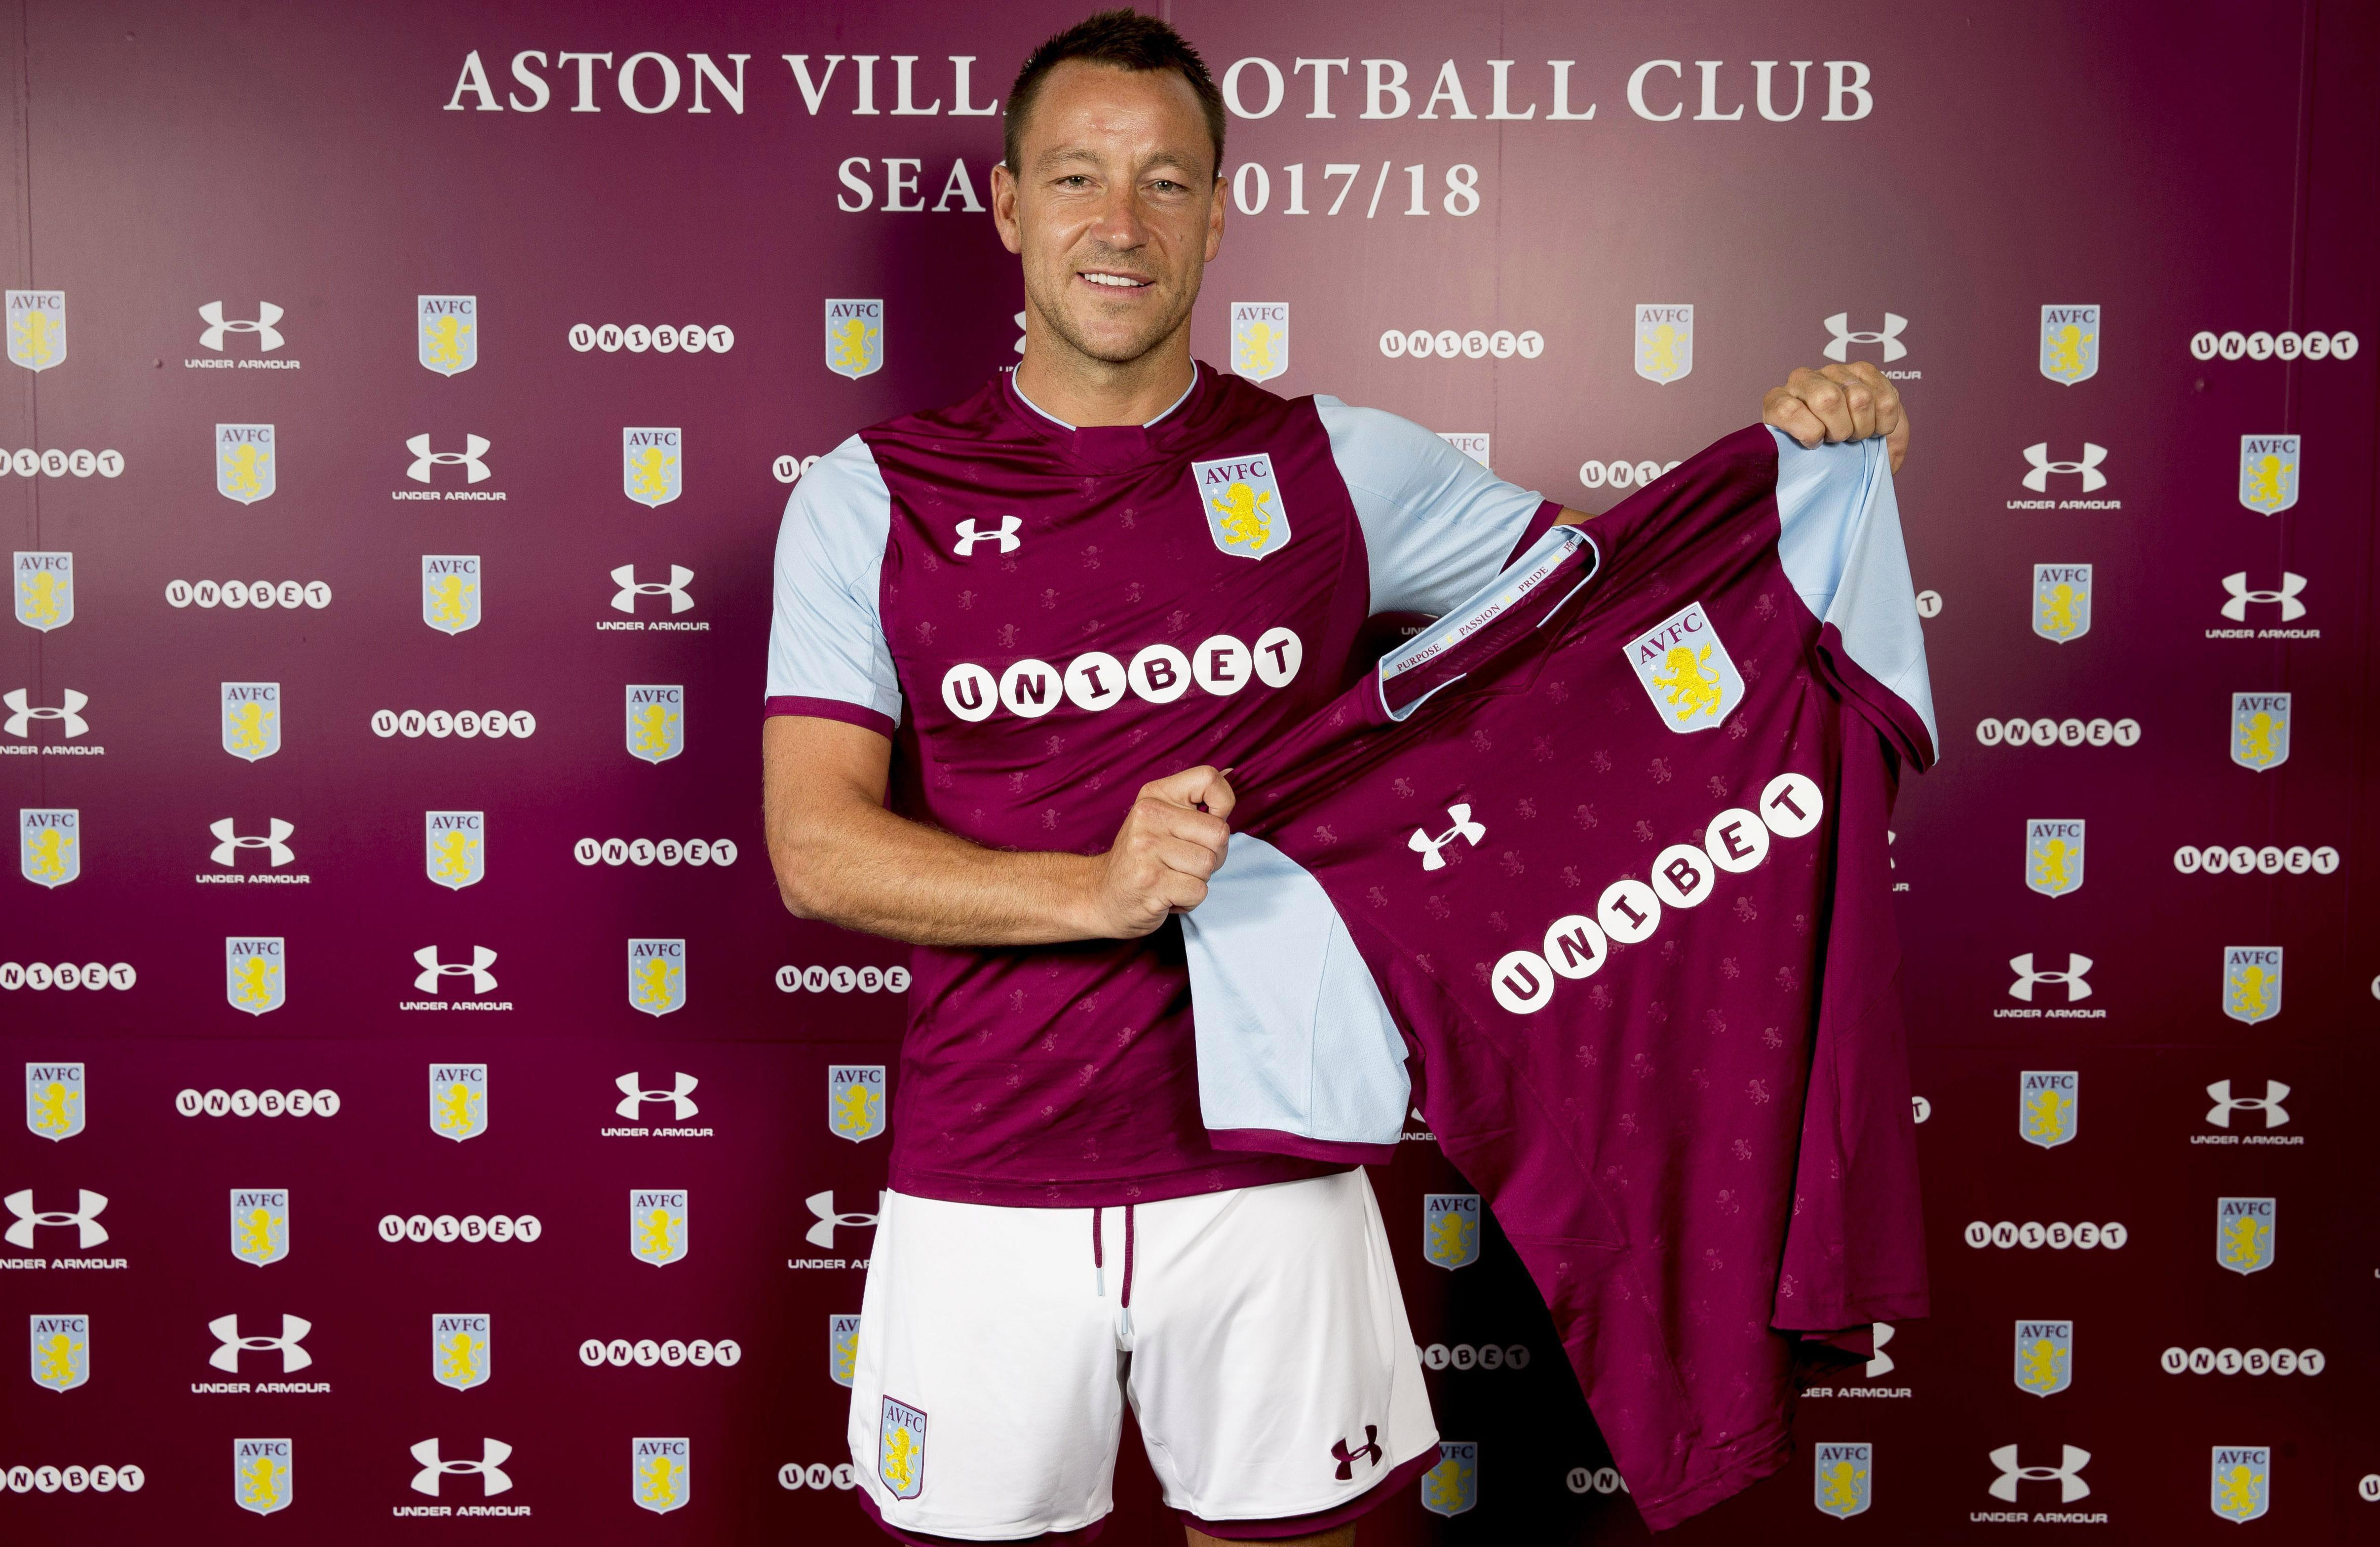 Terry has recently recoupled with Aston Villa after ditching long-time partner Chelsea